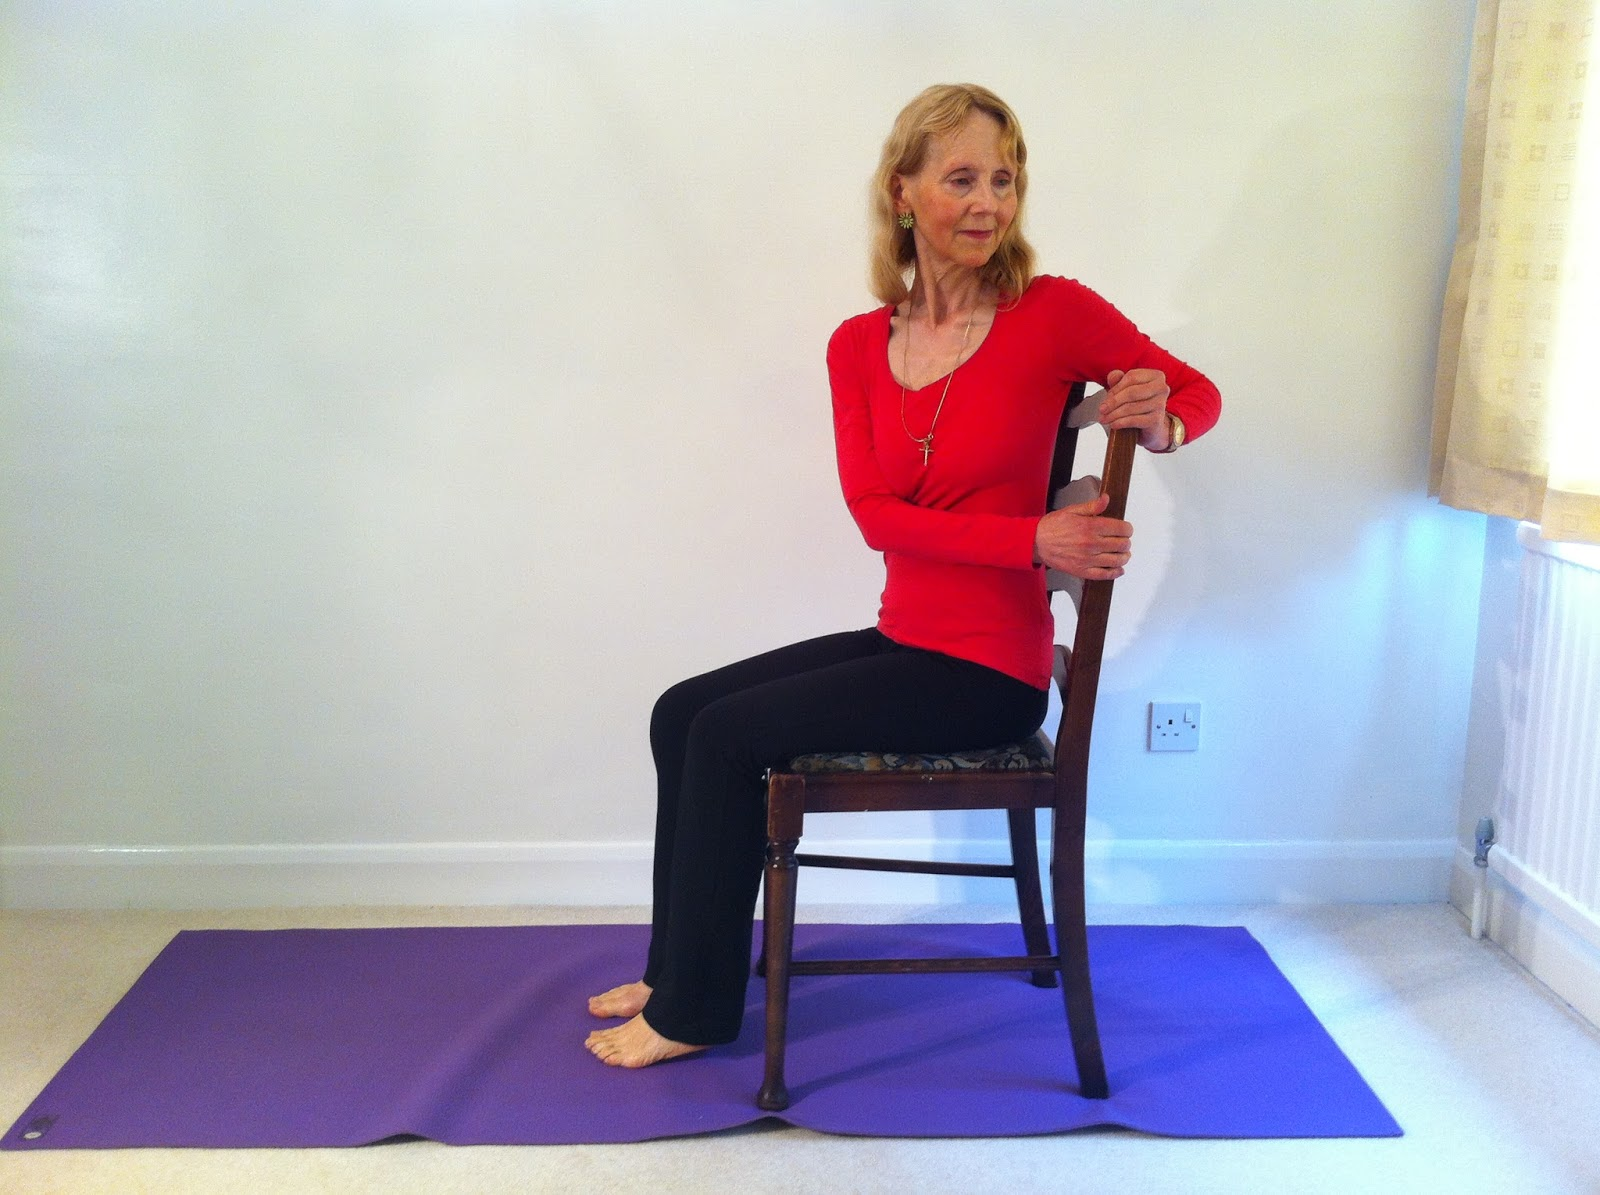 seated chair yoga poses for seniors marine captain chairs flexiladies upper back pain